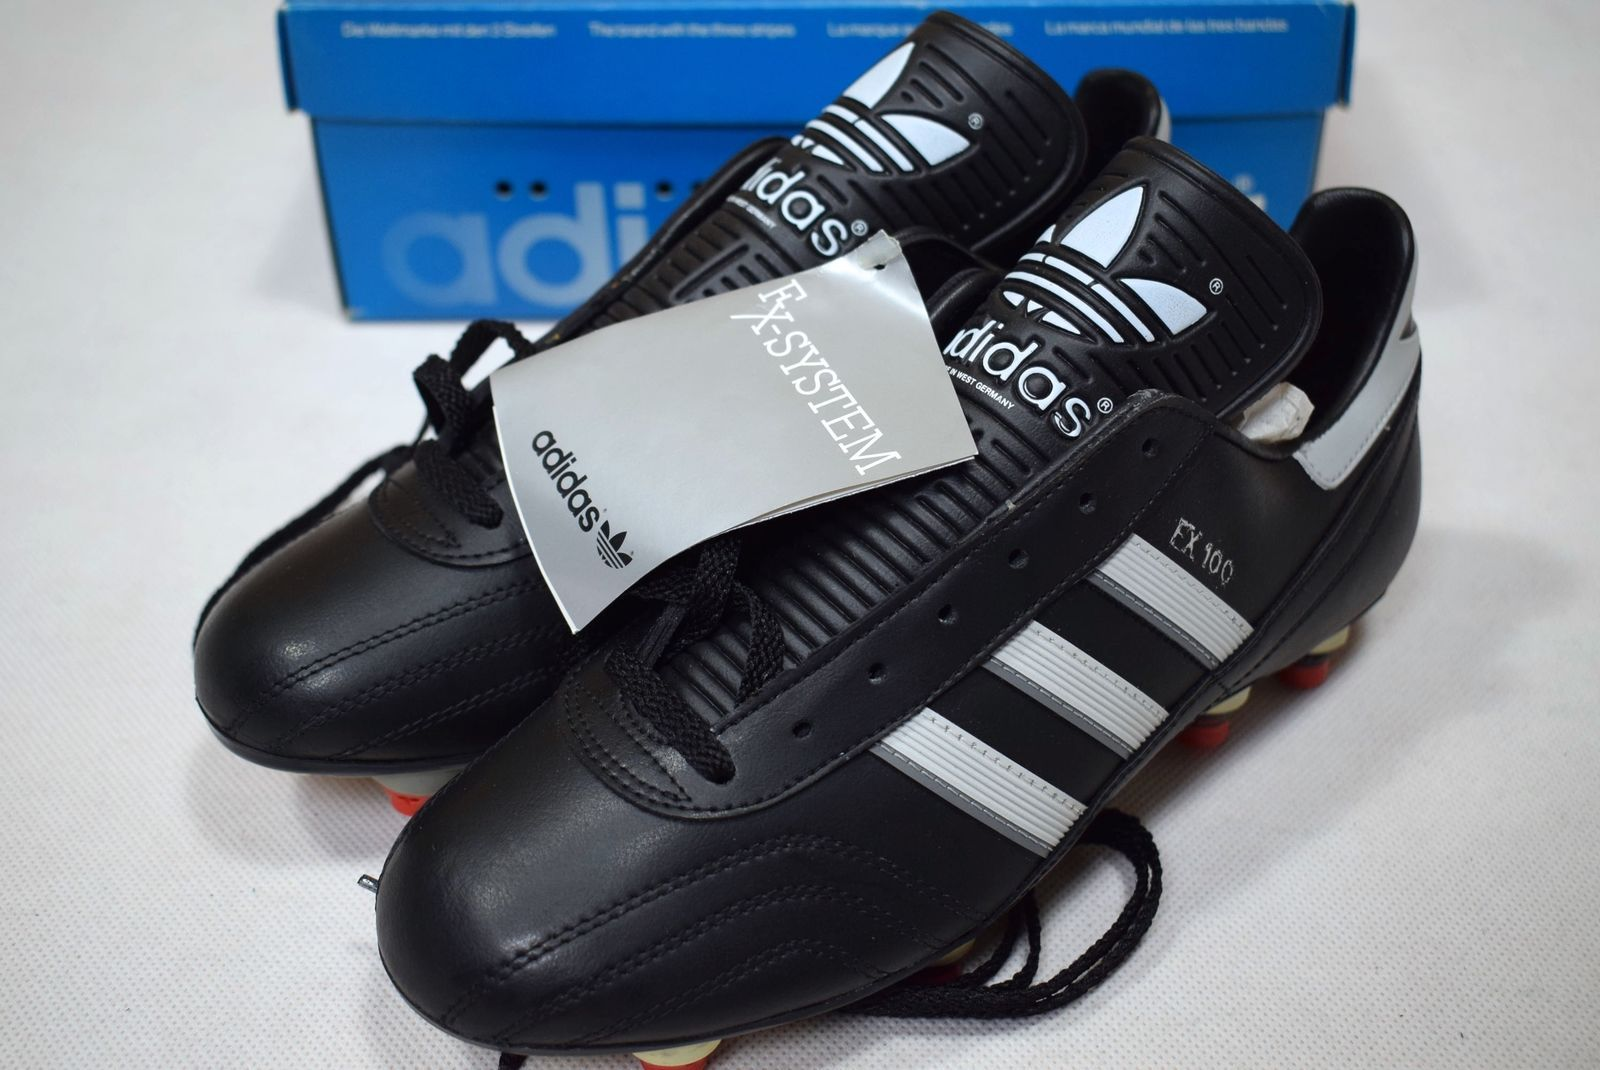 innovative design 5c629 c68ec Adidas FX 100 Soccer Shoes Soccer Shoes Cleats Vintage Deadstock 6.5 NEW    eBay Adidas Football